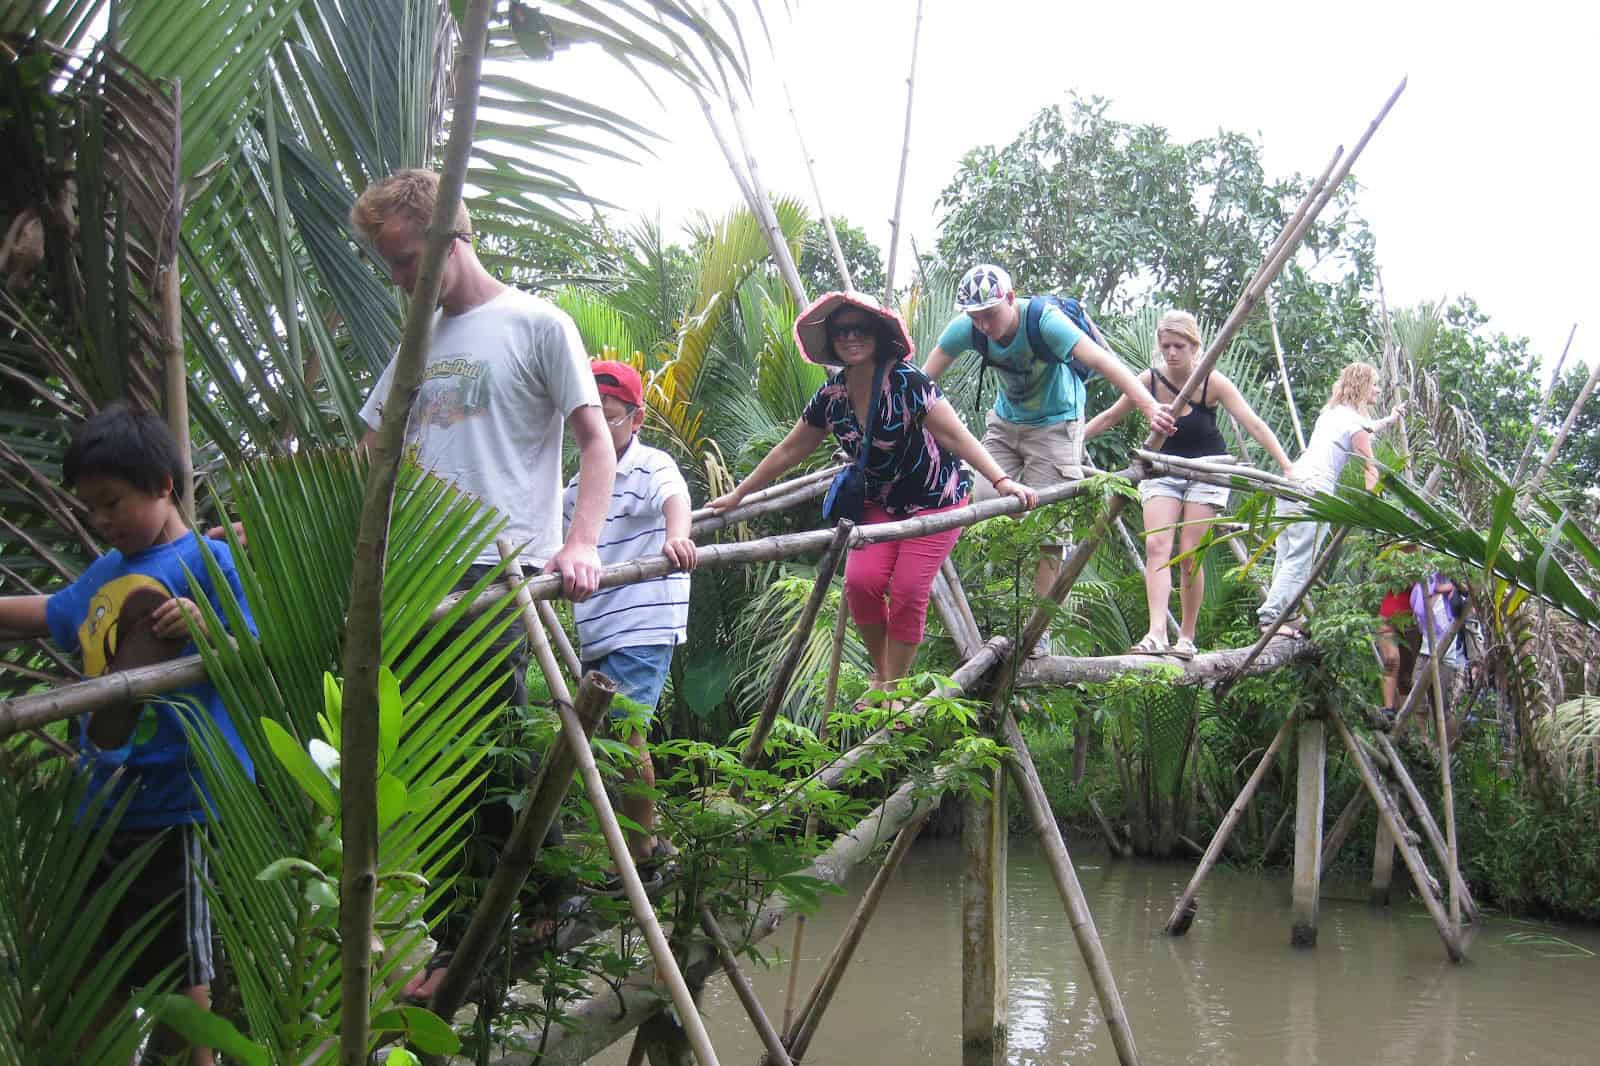 Tourists experience the game of crossing monkey bridge in mekong delta